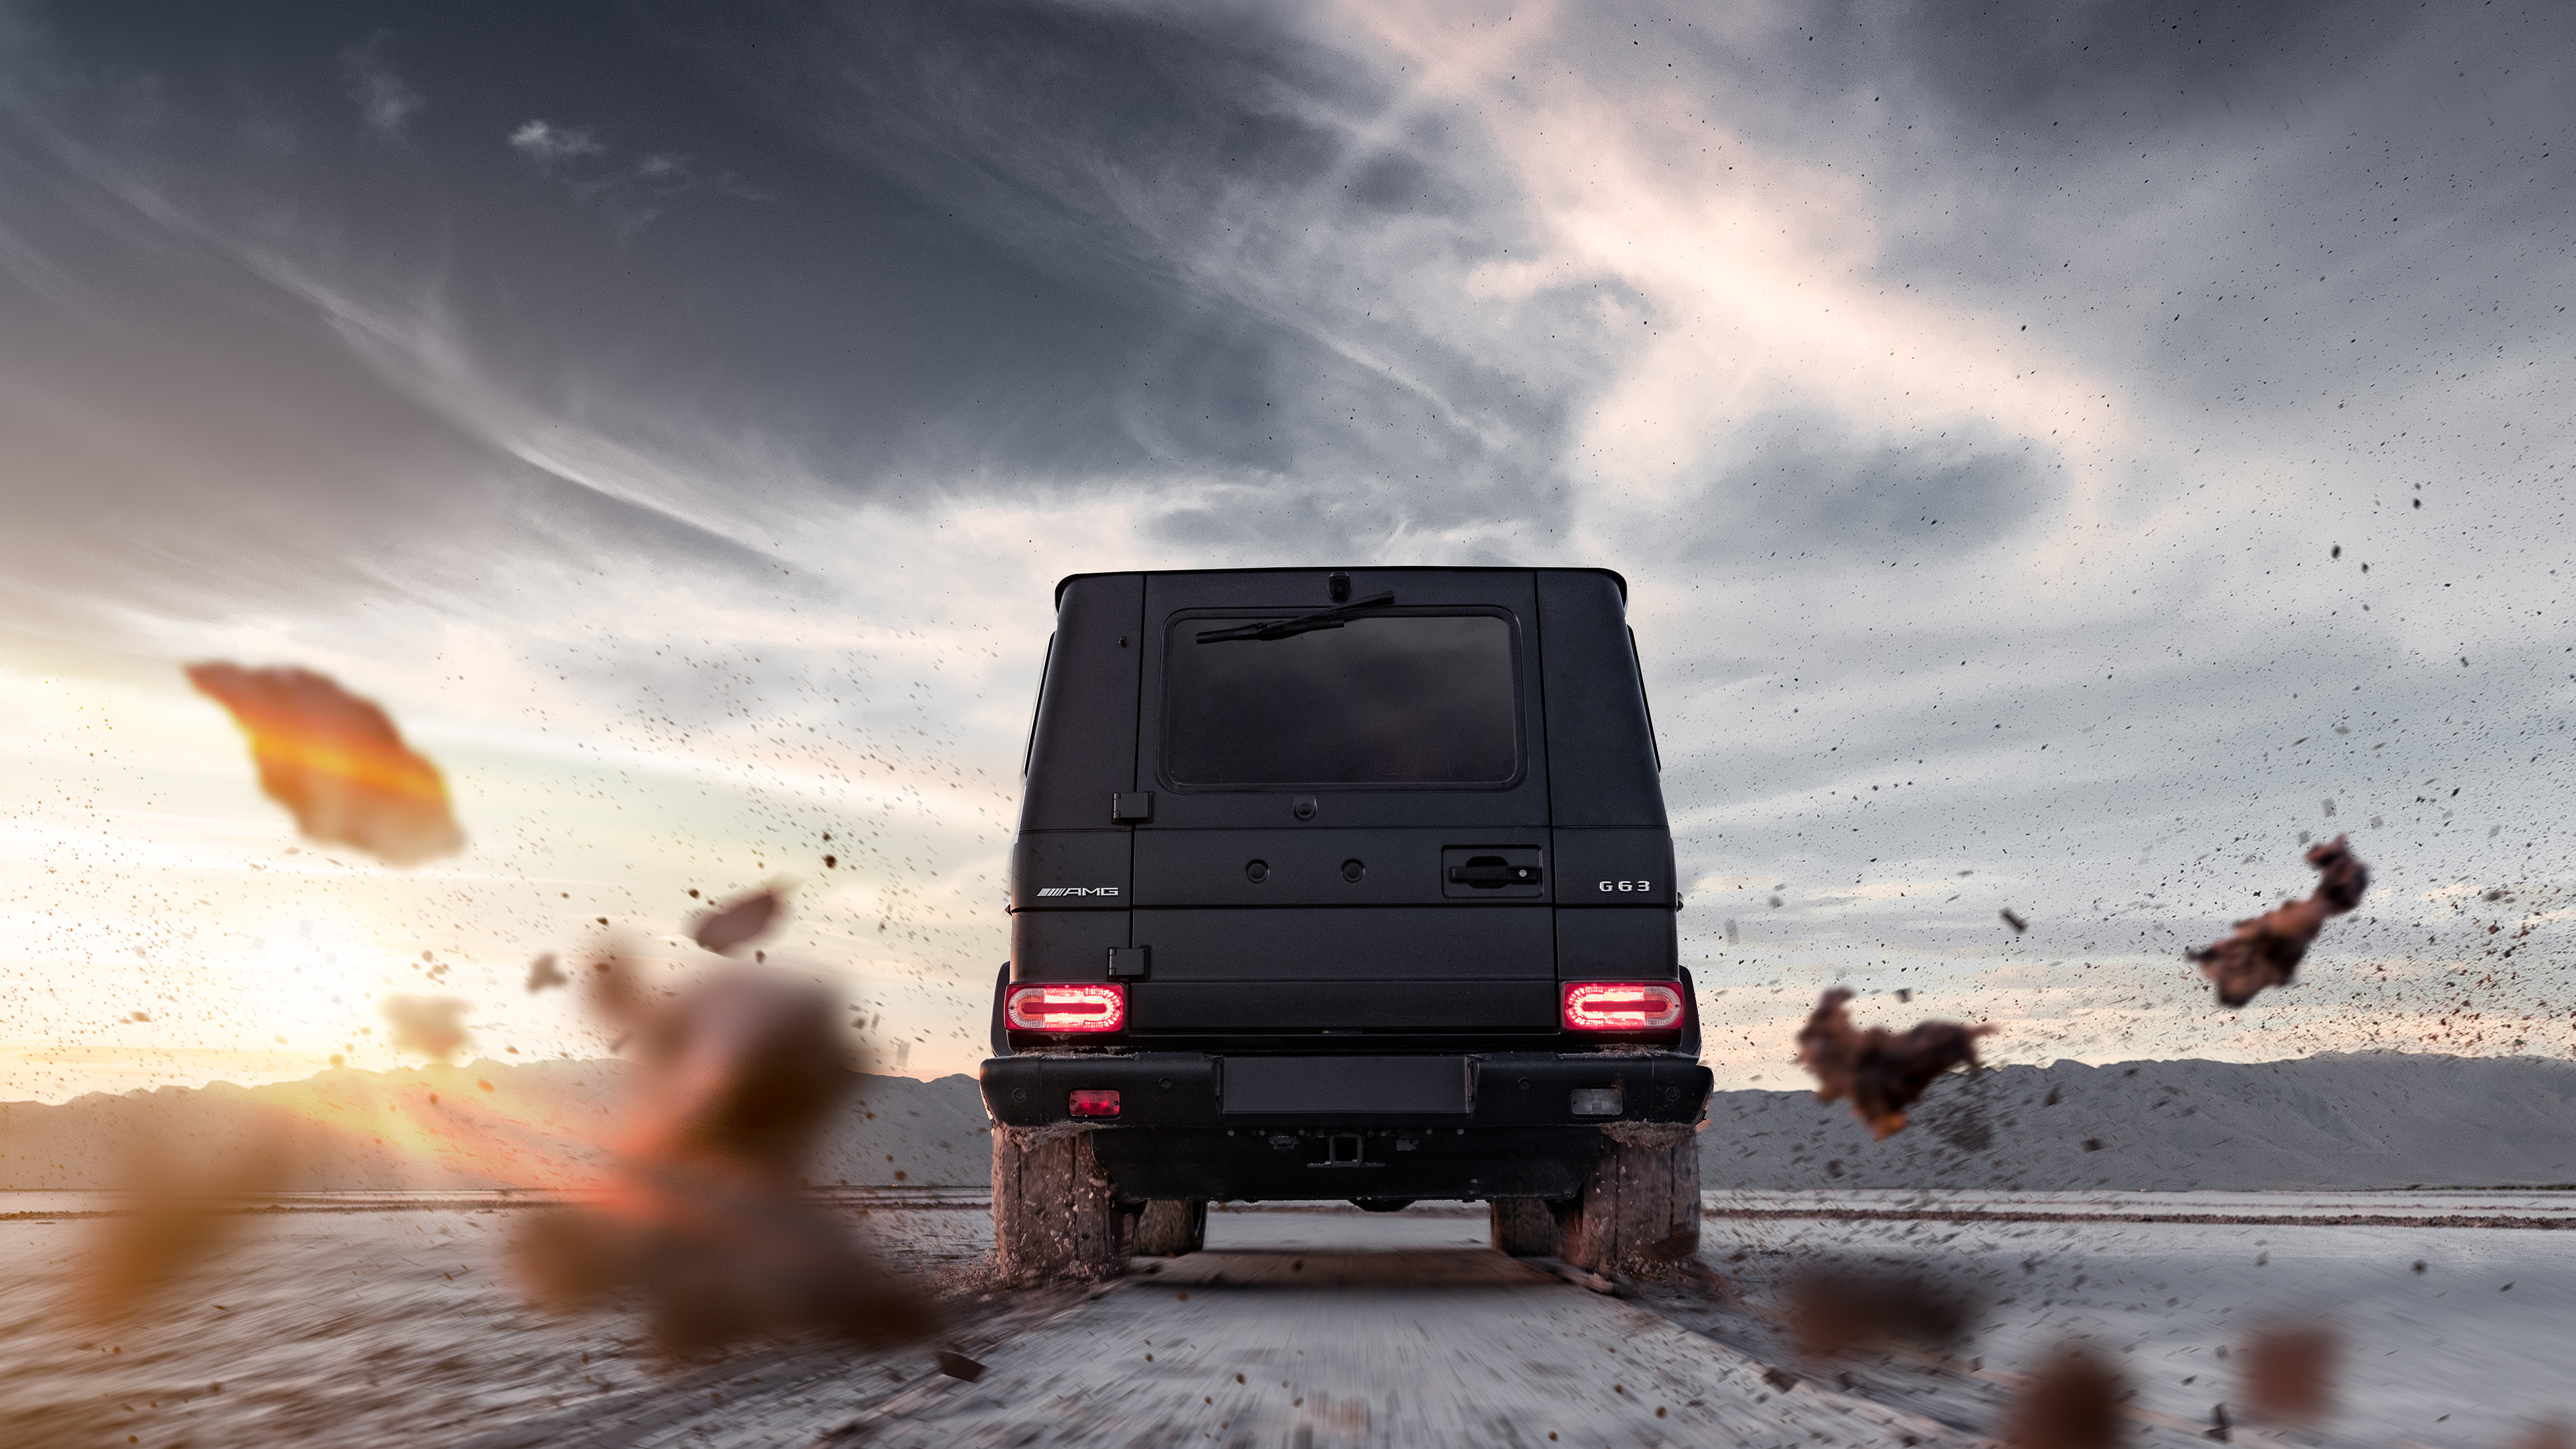 g63 amg 1569189312 - G63 AMG - suv wallpapers, mercedes wallpapers, mercedes g class wallpapers, mercedes benz wallpapers, hd-wallpapers, cars wallpapers, behance wallpapers, 4k-wallpapers